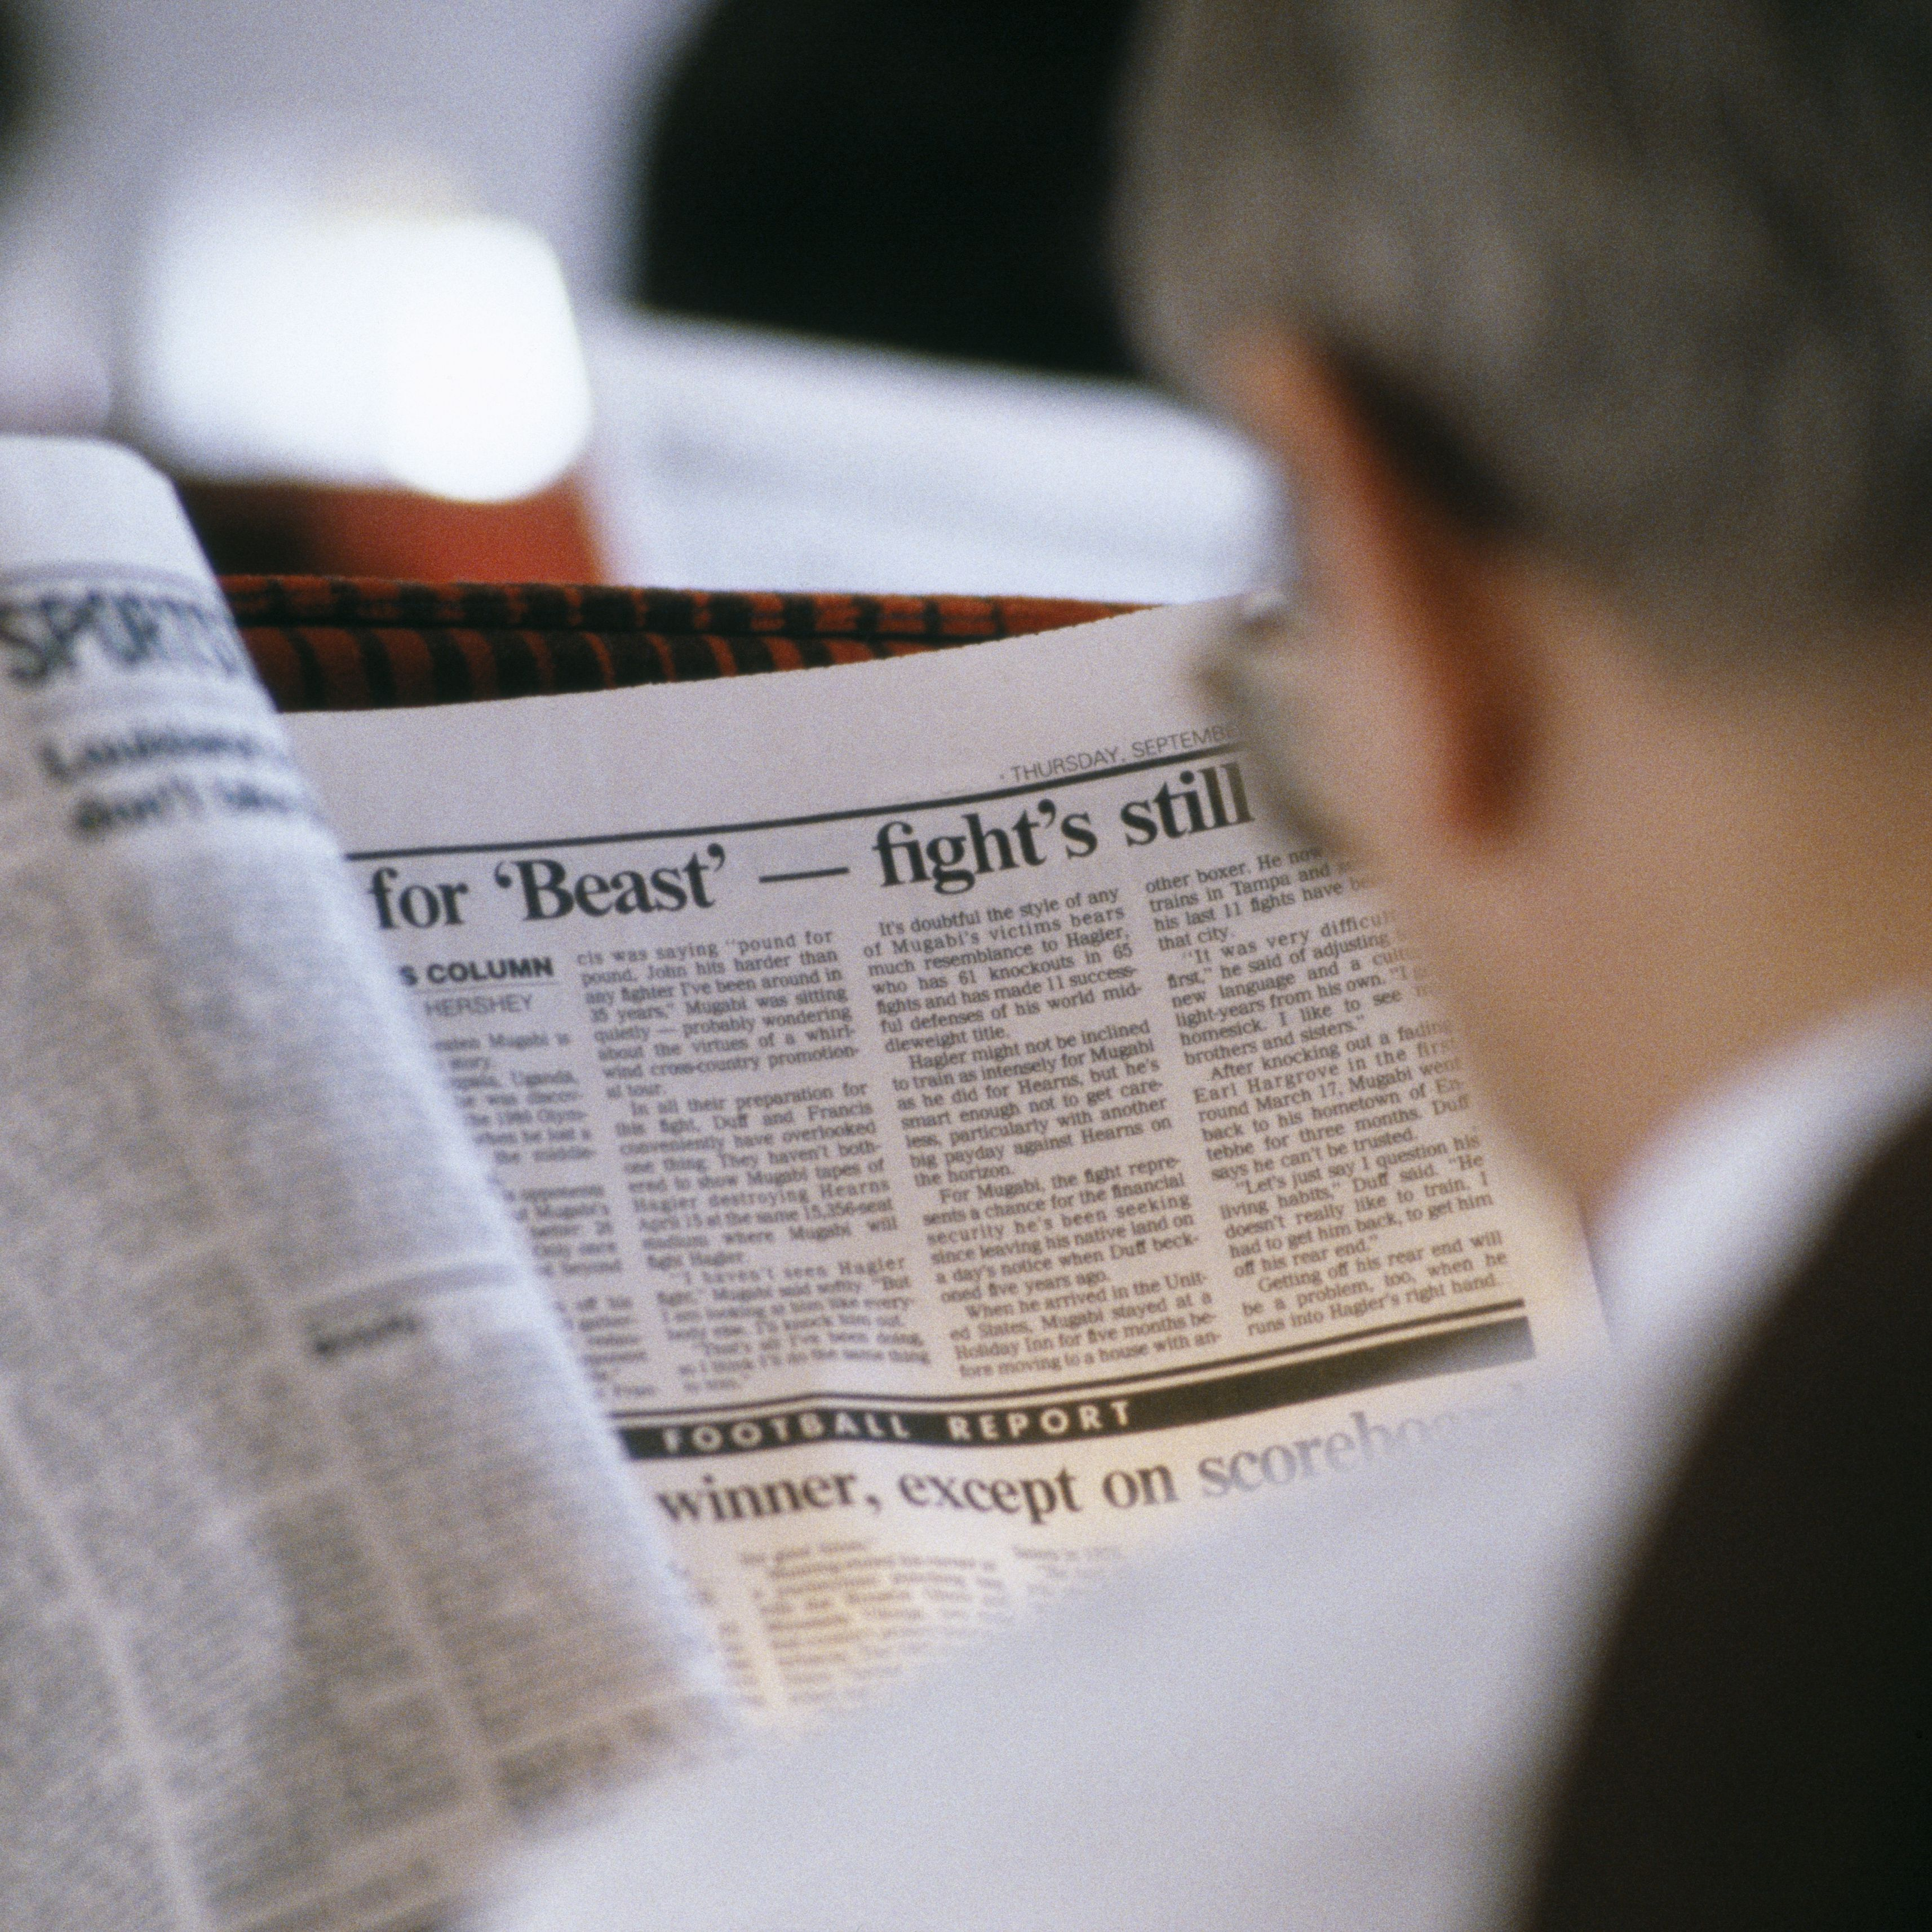 The Differences Between Soft and Hard News